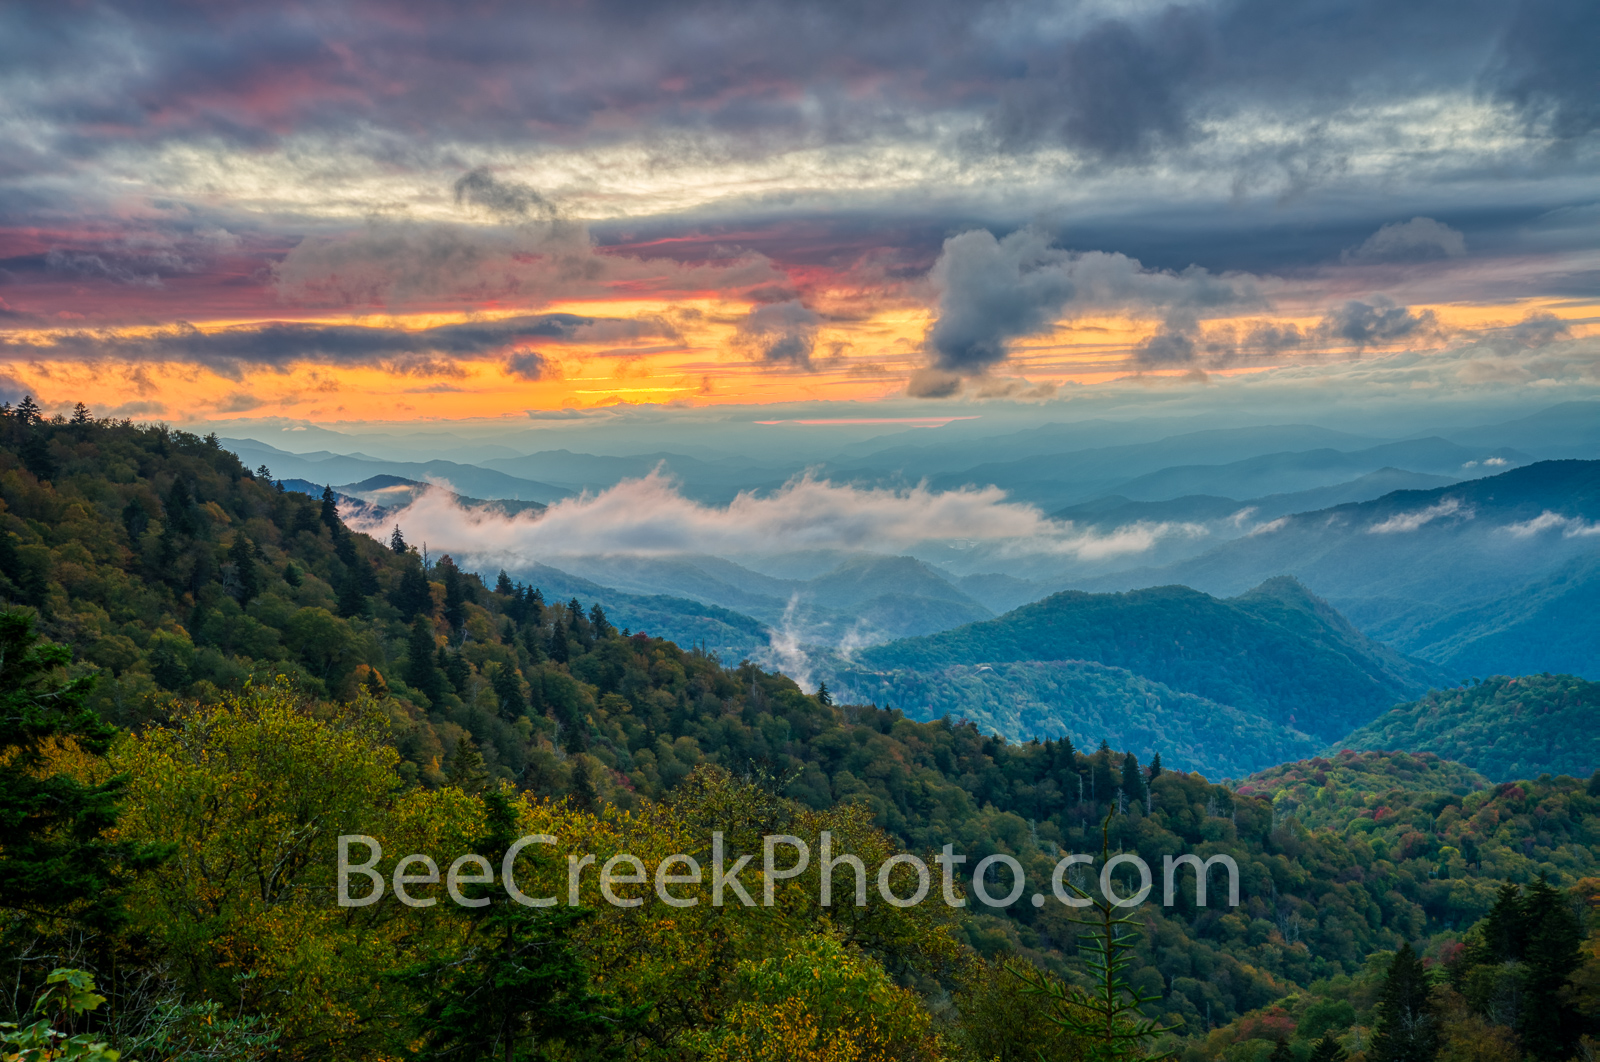 Sunset at Blue Ridge Mountains - Shortly after sunset when colors were still peeking through the clouds you can see the ridge...